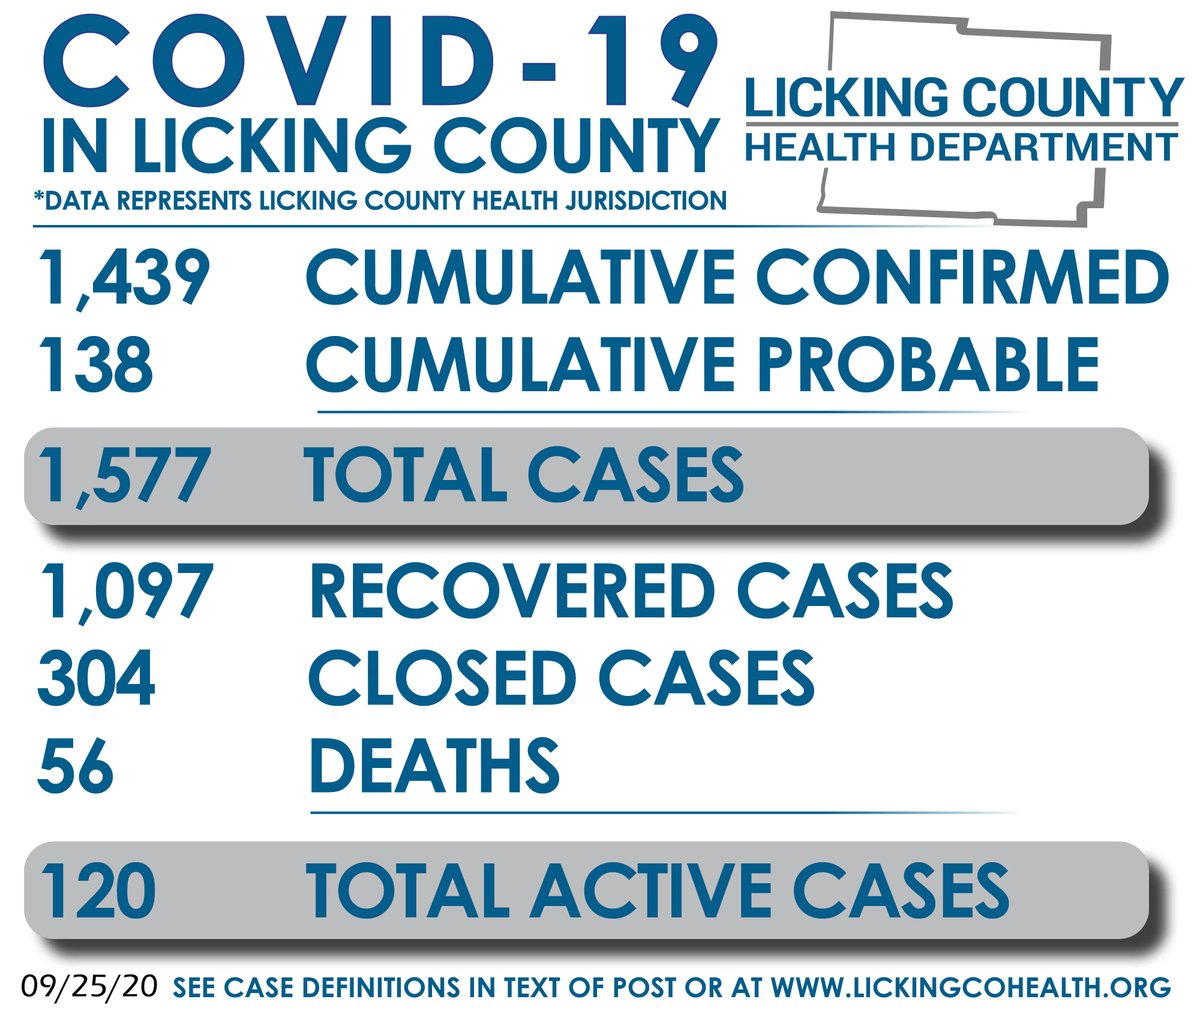 Today, LCHD is reporting 1,439 cumulative confirmed COVID-19 cases in the Licking County Health Jurisdiction. In addition, there are 138 cumulative probable cases, 1,097 recovered cases, 304 closed cases, & 56 COVID deaths. There are 120 total active cases today. Yesterday: 134.